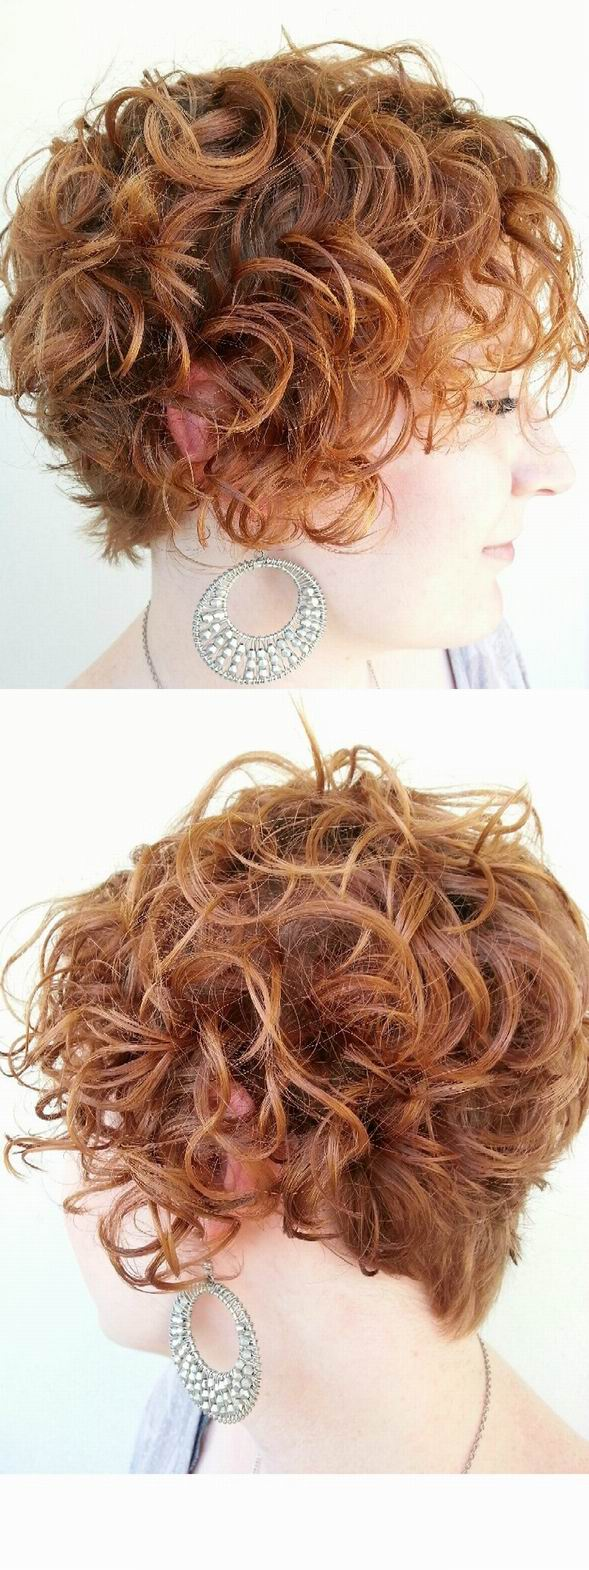 Cool 32 Easy Hairstyles For Curly Hair For Short Long Amp Shoulder Short Hairstyles Gunalazisus